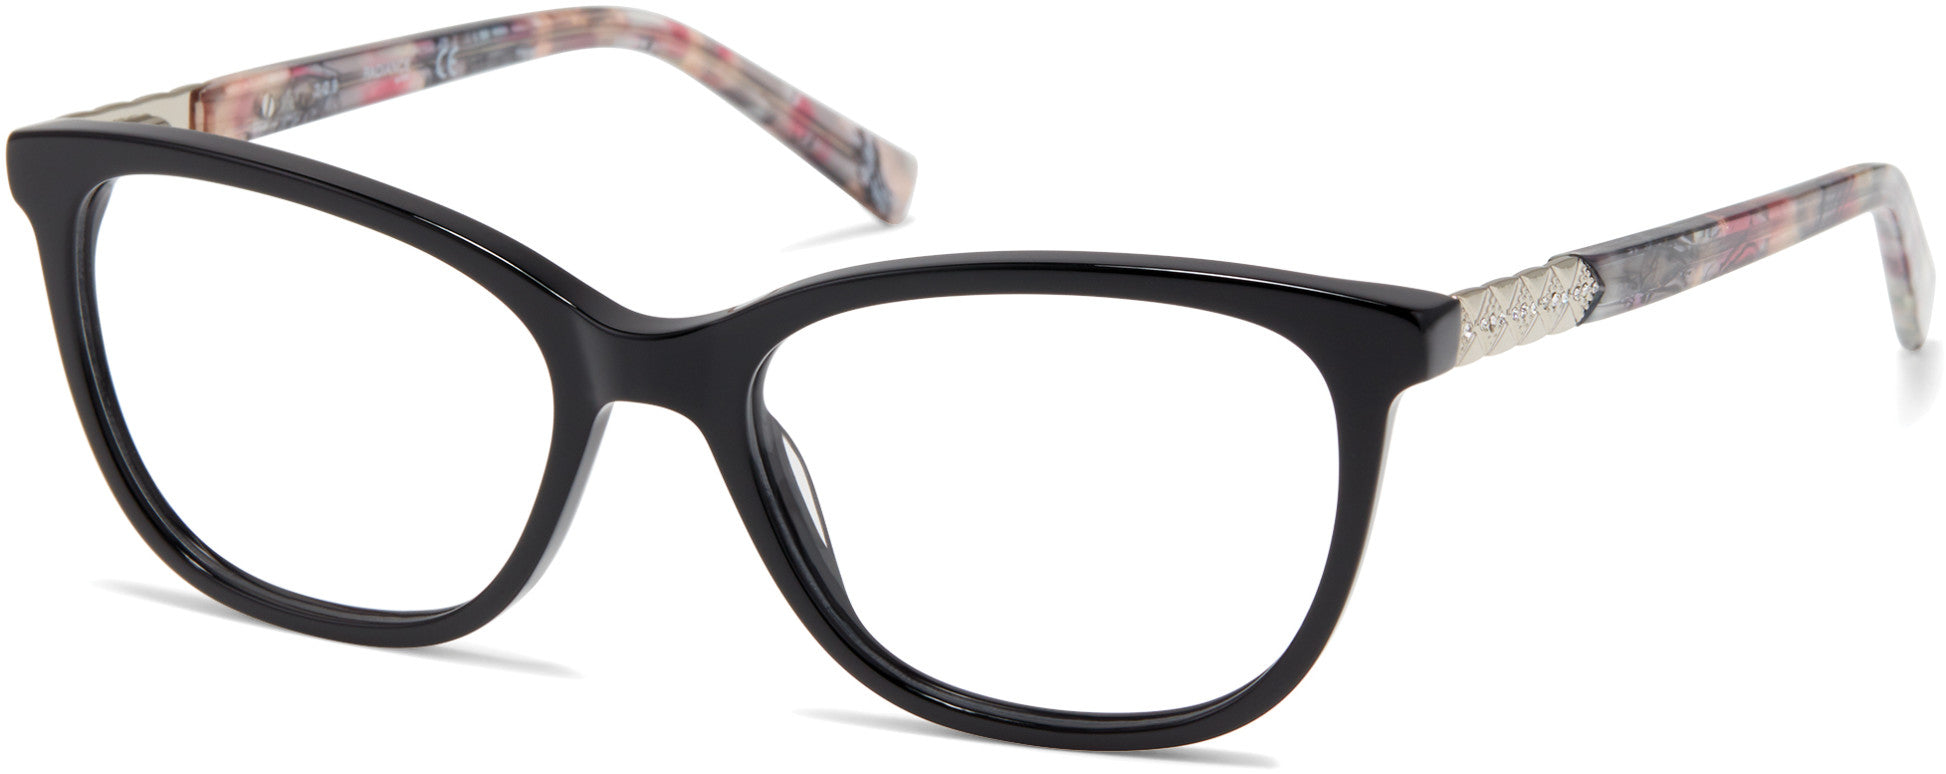 Viva VV8012 Square Eyeglasses For Women